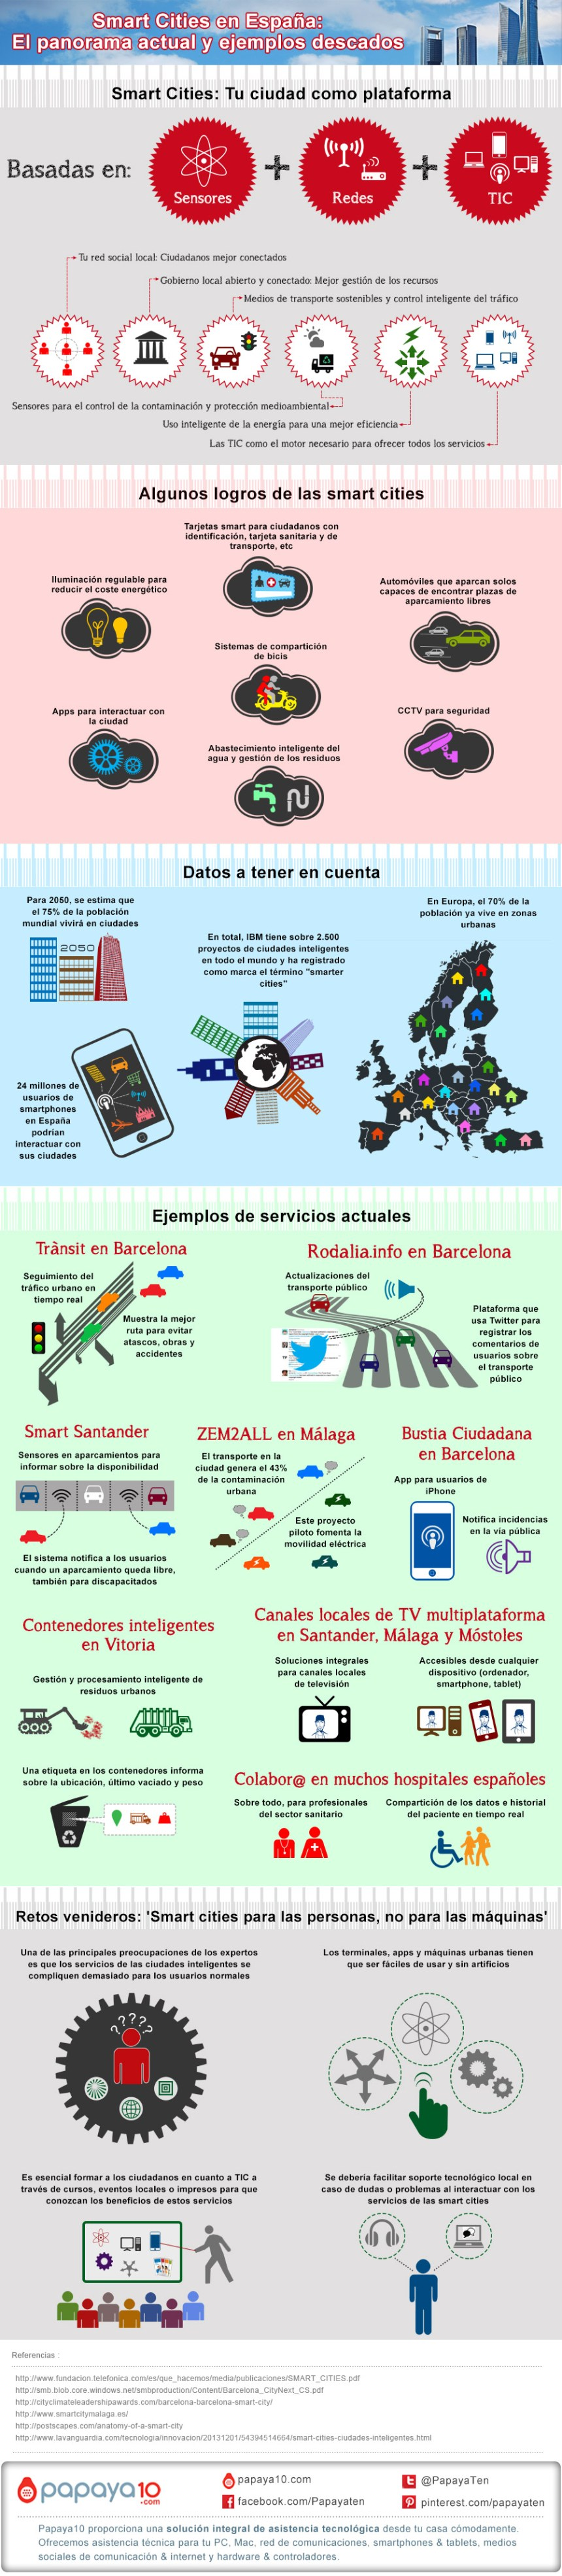 Smart cities en España: panorama actual